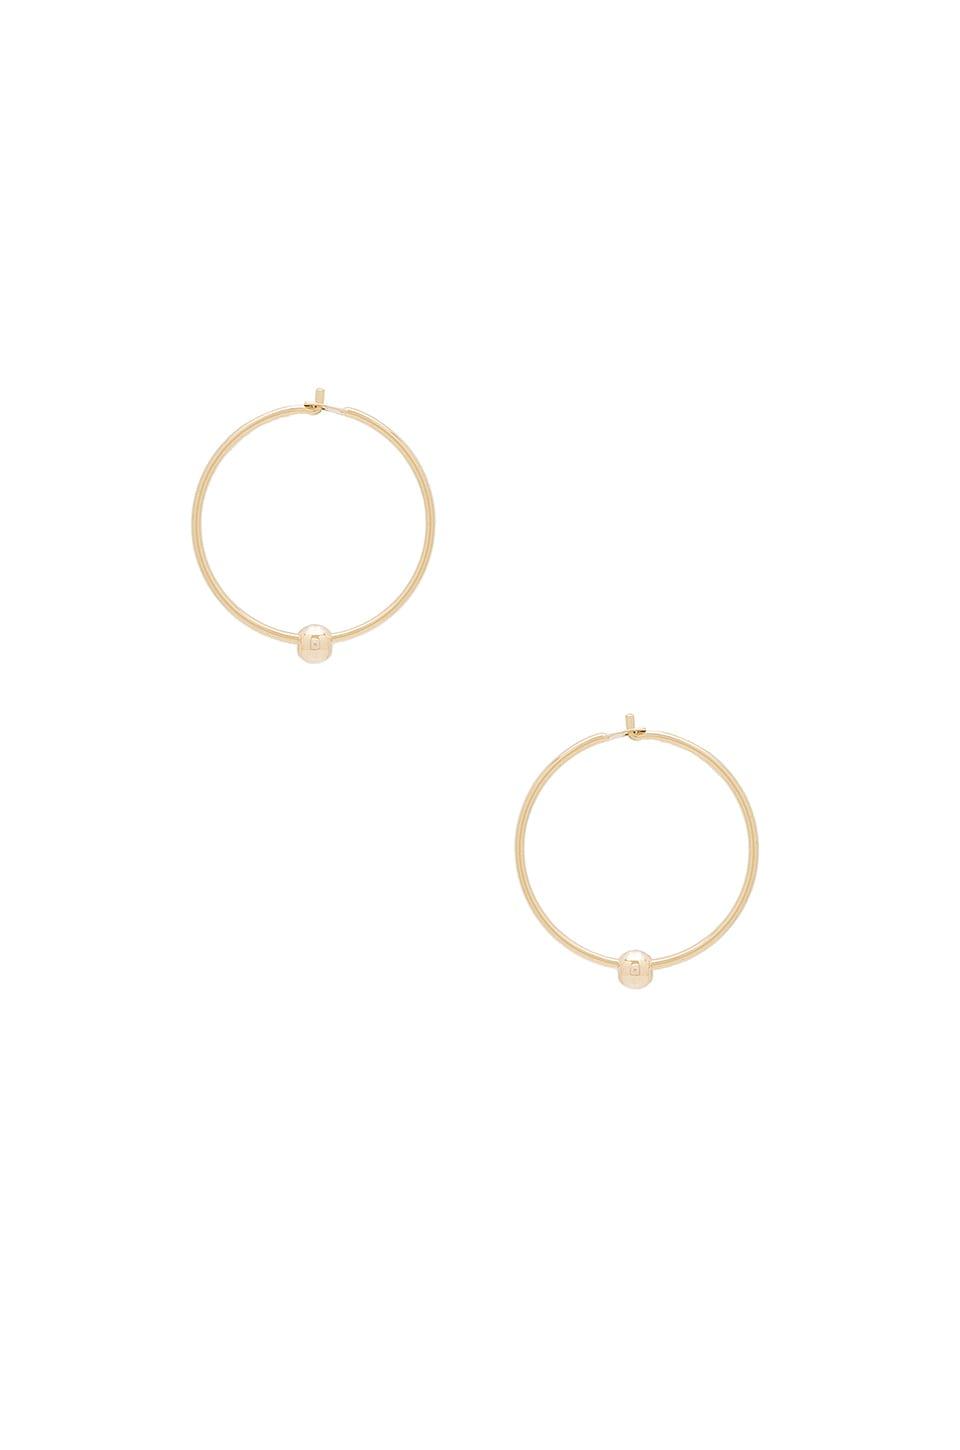 ERTH Ball Sleeper Earrings in Gold